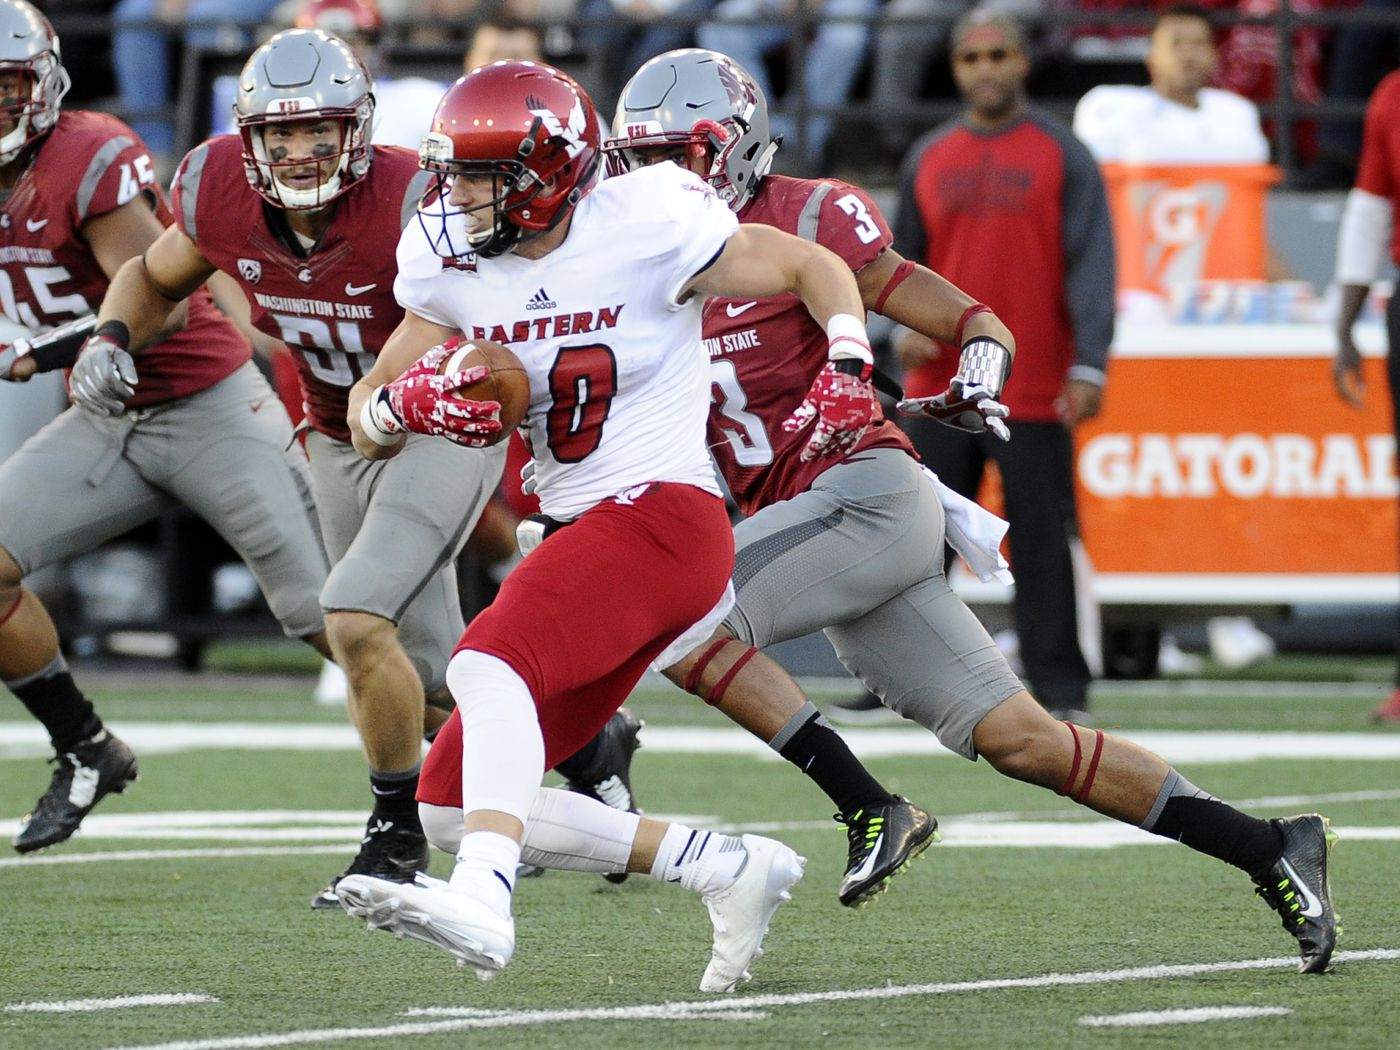 2017 Nfl Draft Cooper Kupp Scouting Report Niners Nation